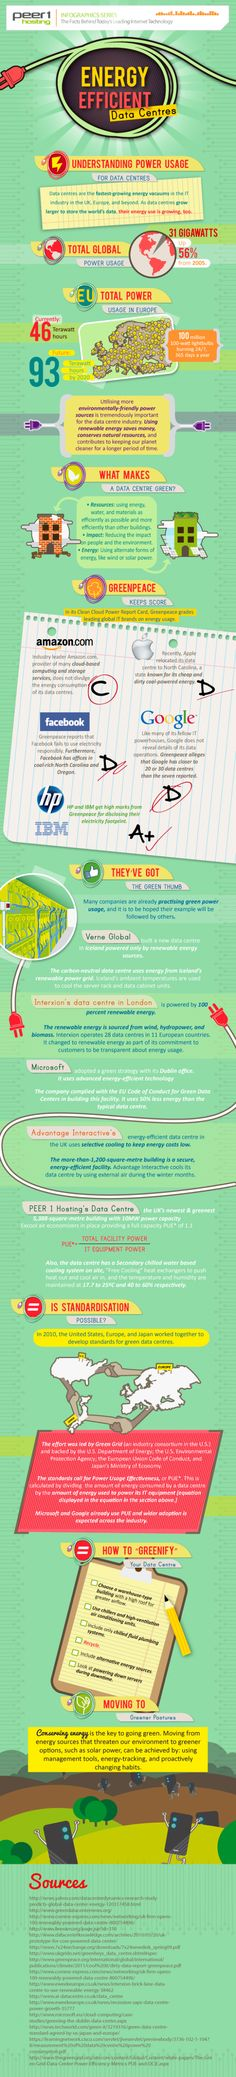 1000 images about energy efficiency in data center on for Energy efficiency facts